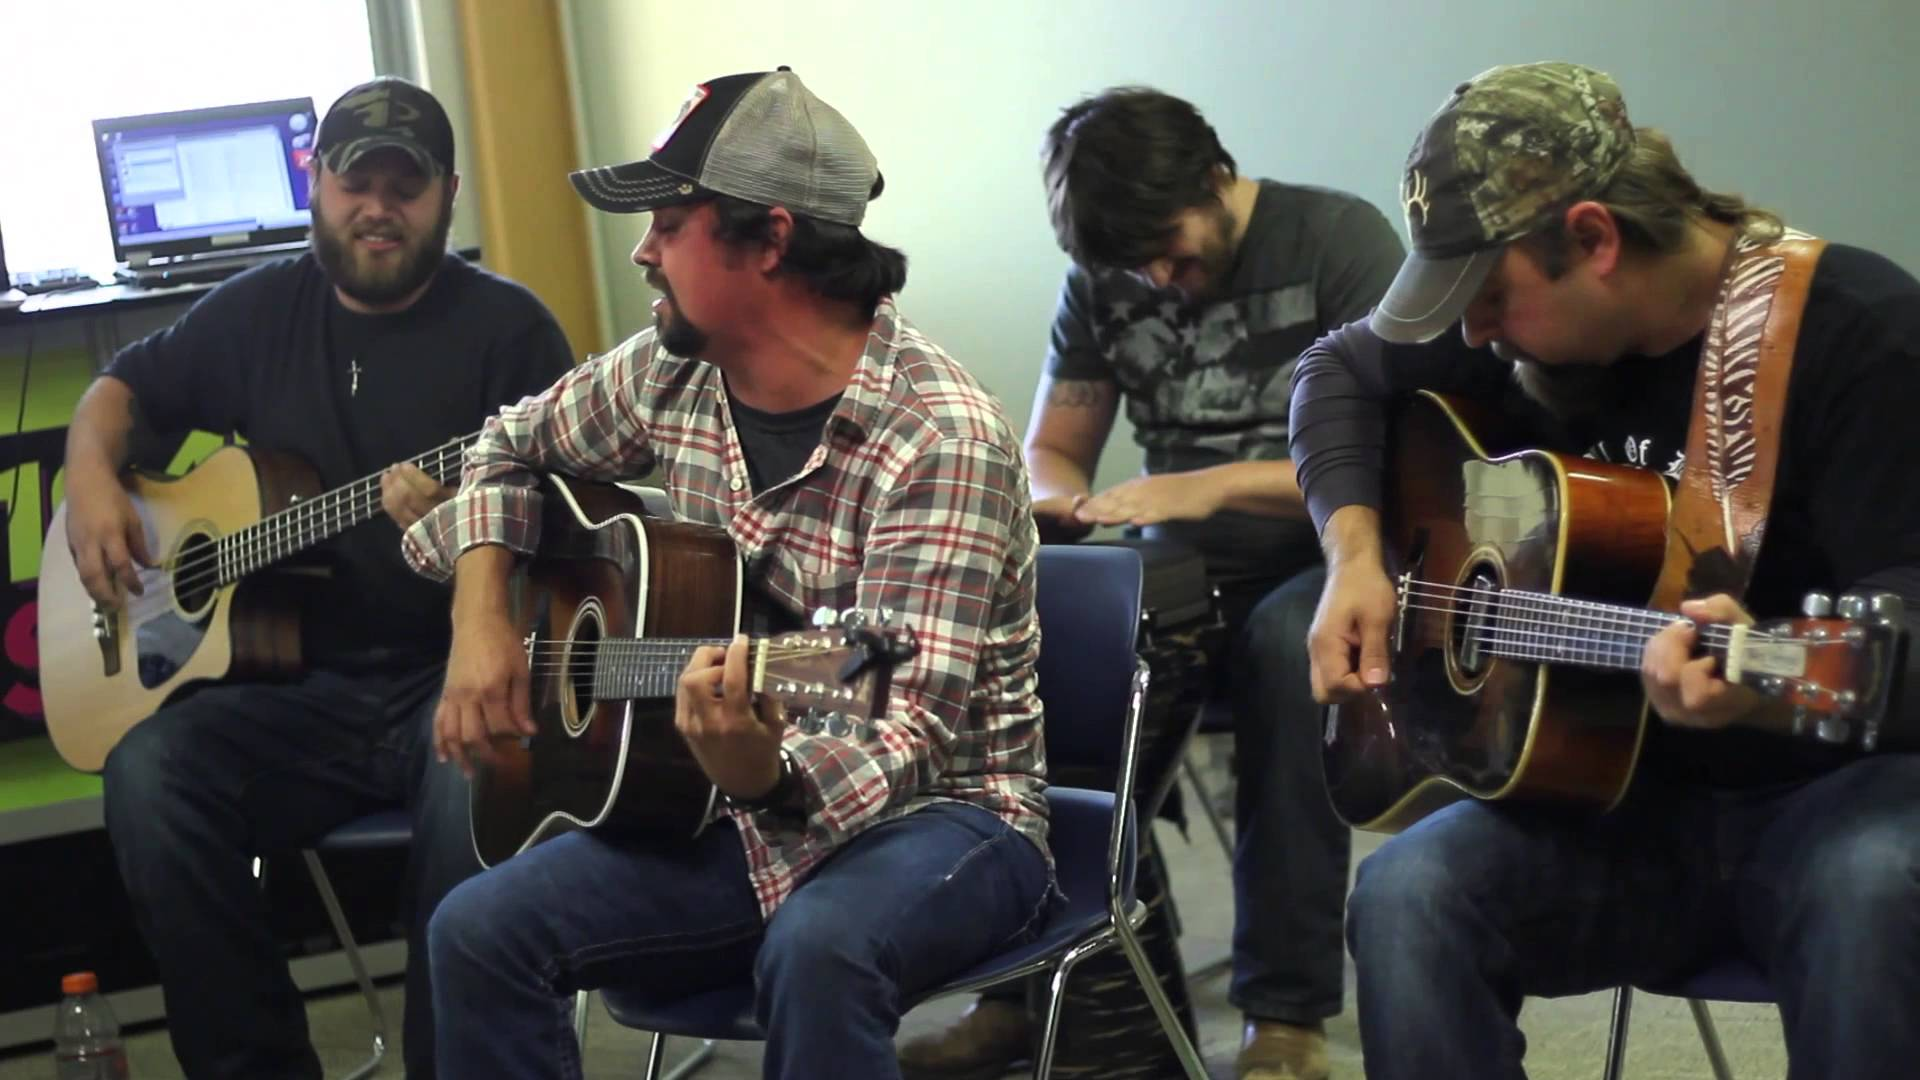 Davisson Brothers Band - Video Gallery - 016 - 2014